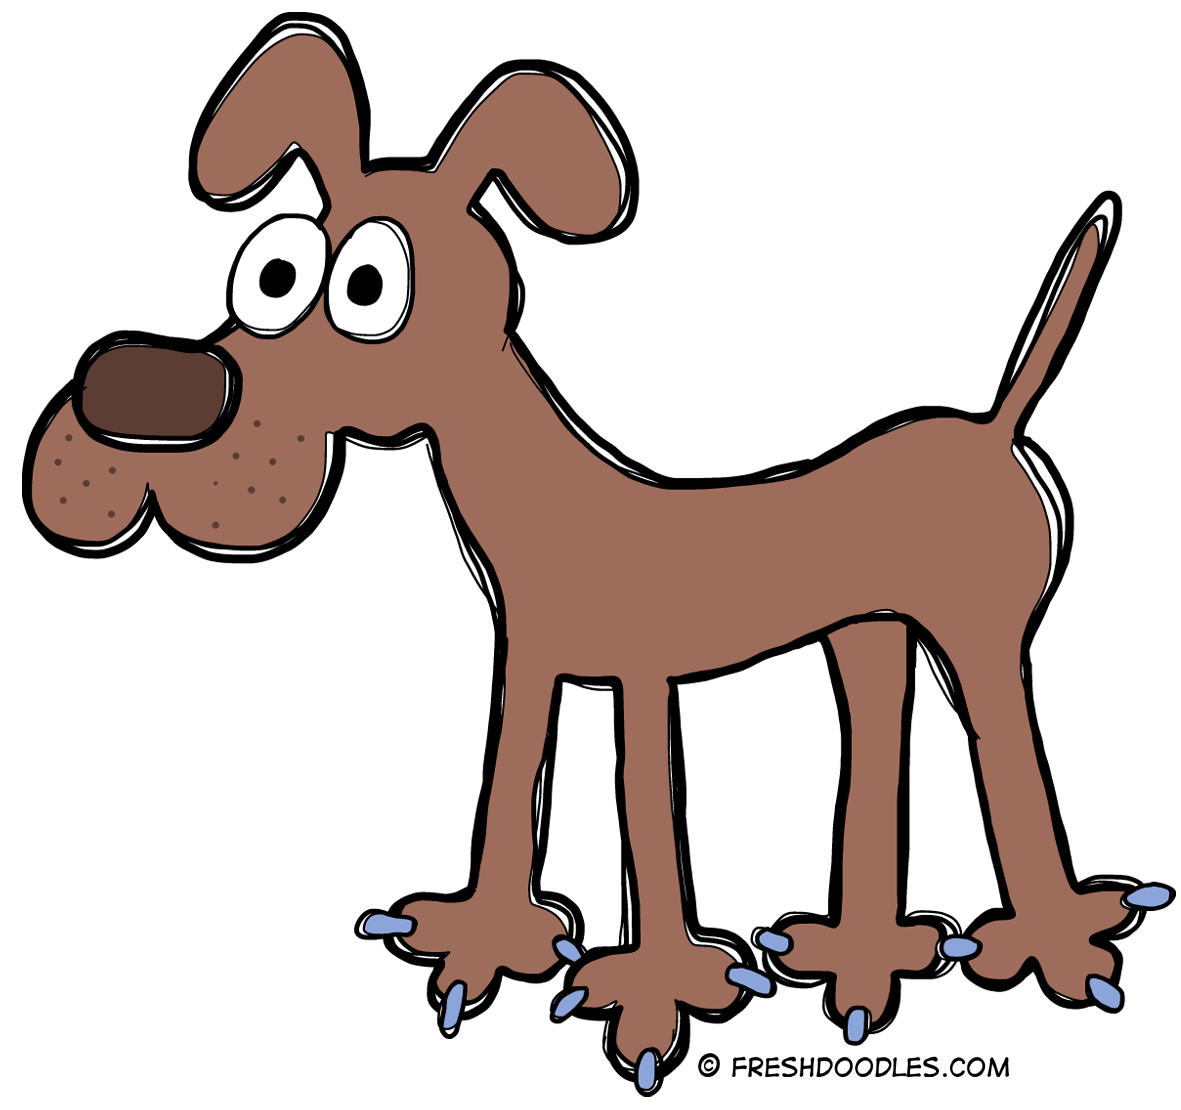 1181x1110 Free Dog Clipart Clip Art Pictures Graphics Illustrations Image 2